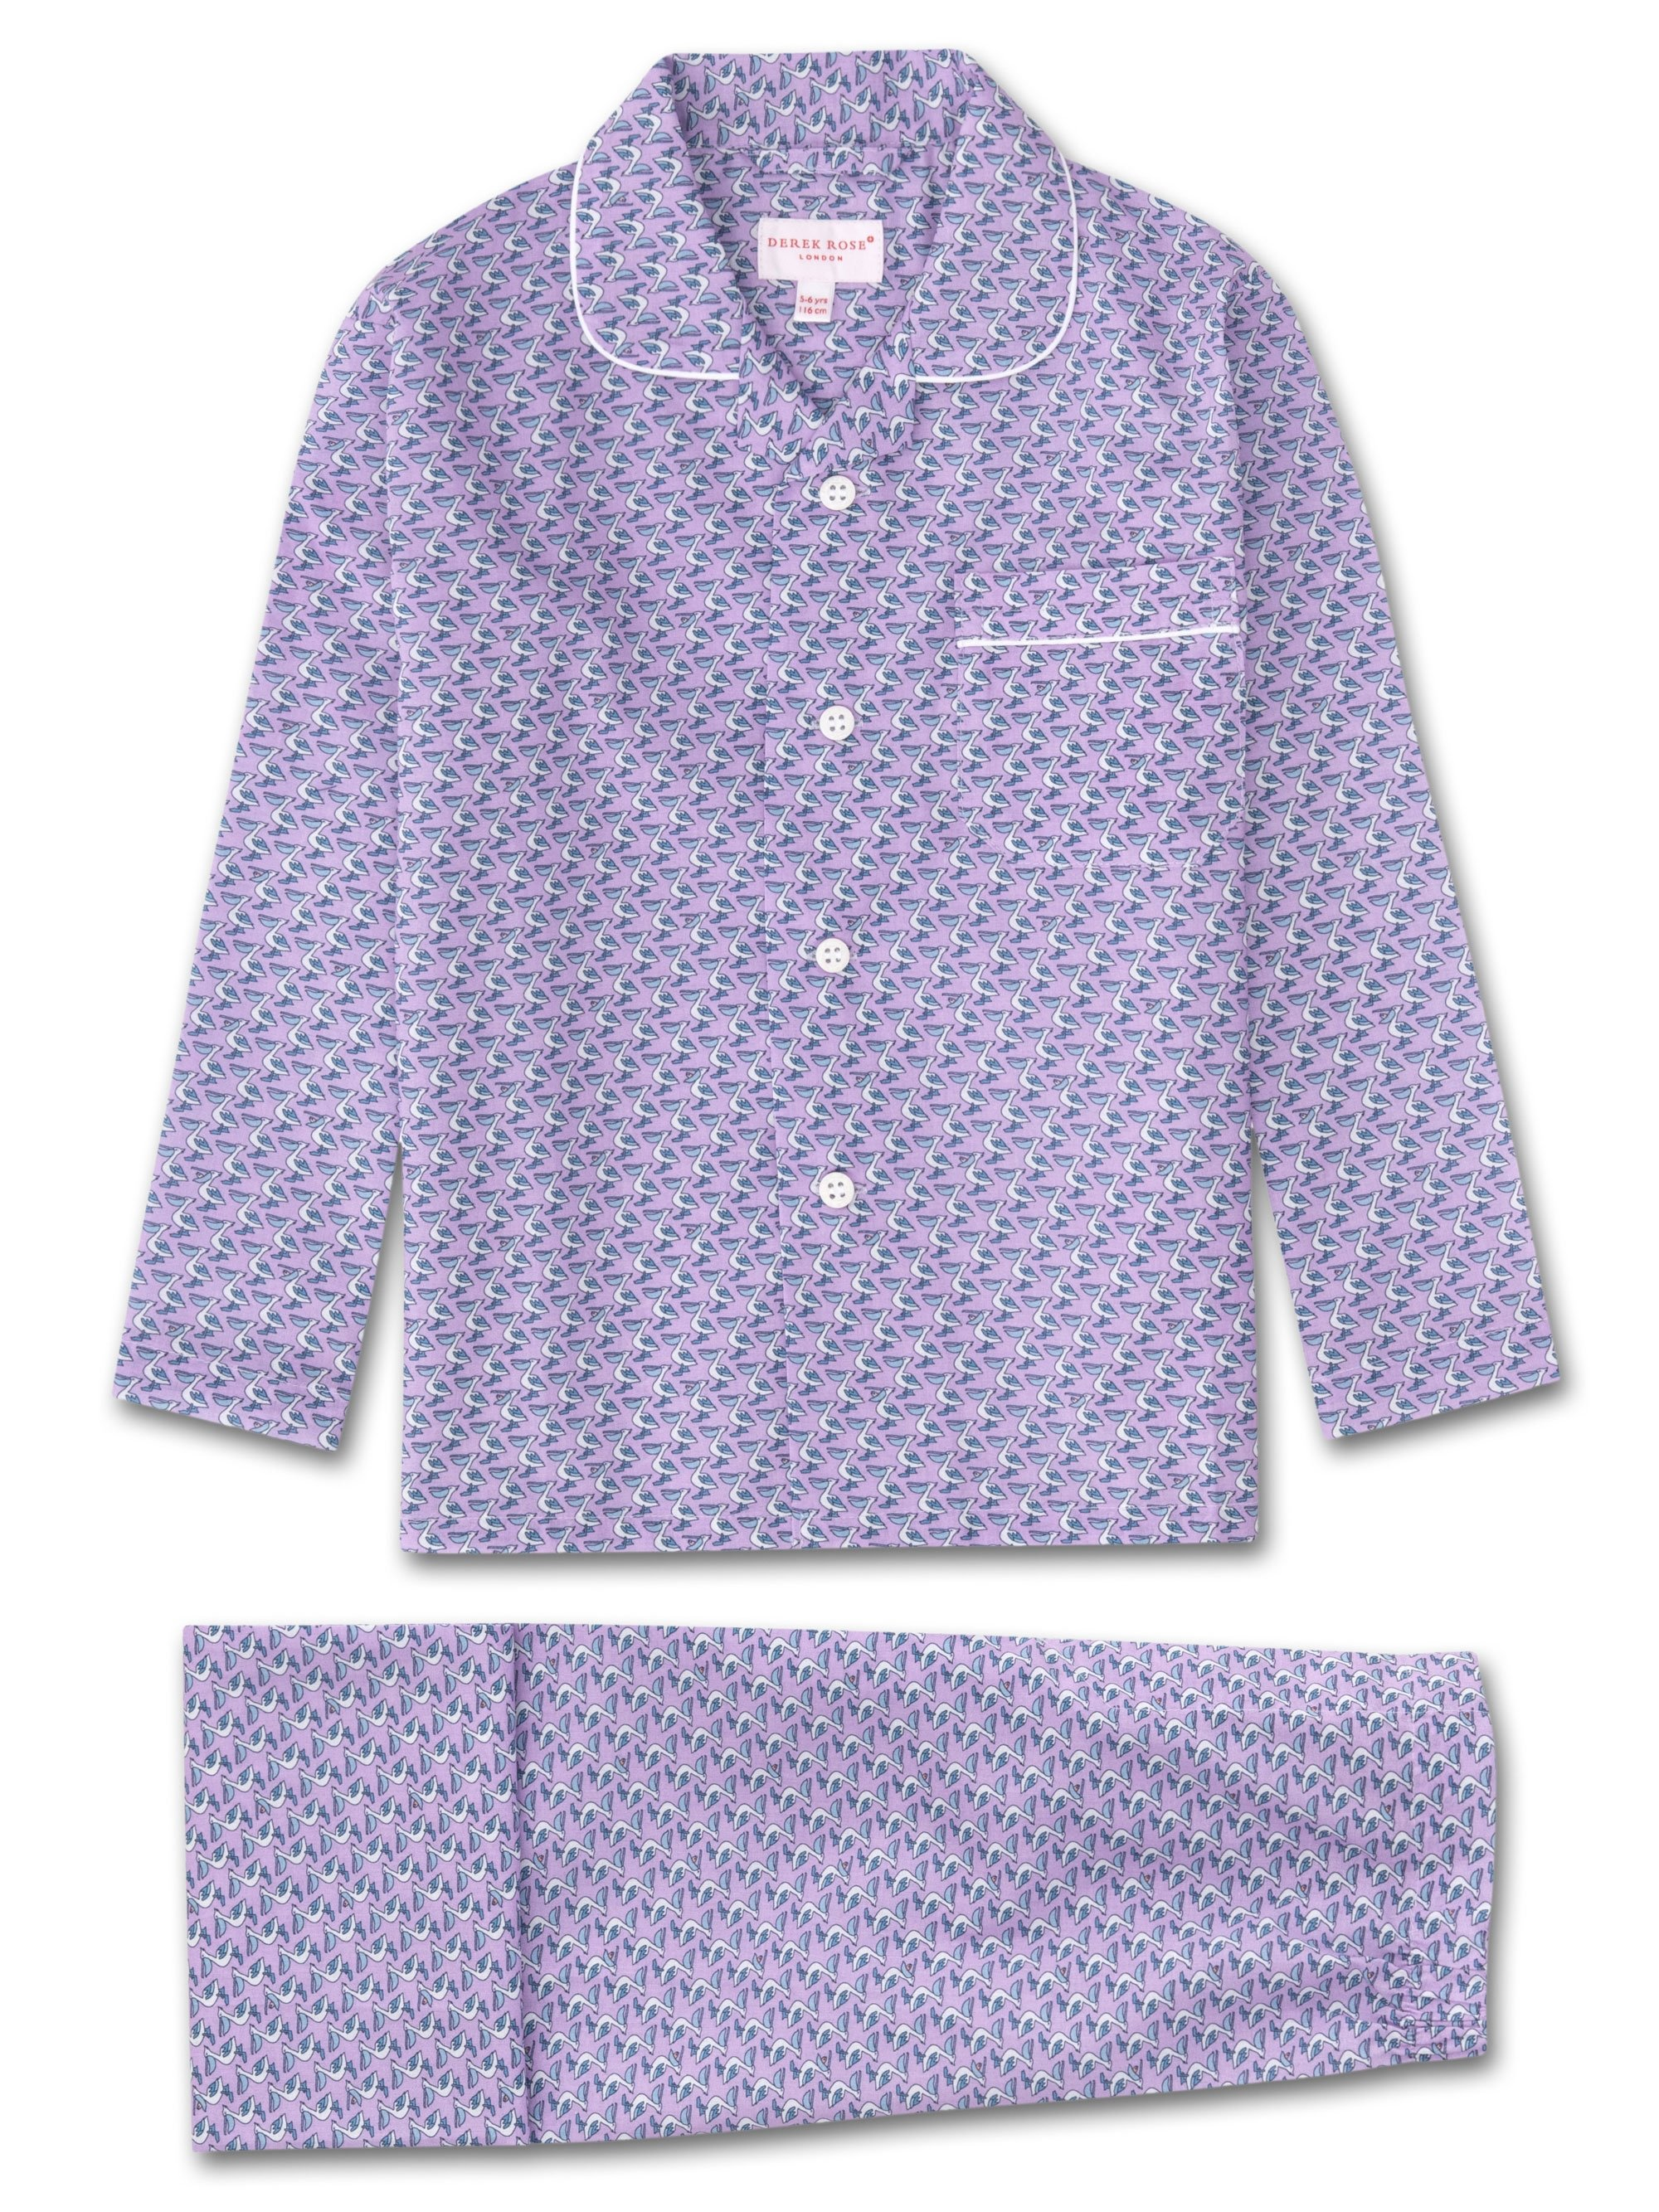 Kids' Pyjamas Ledbury 16 Cotton Batiste Lilac